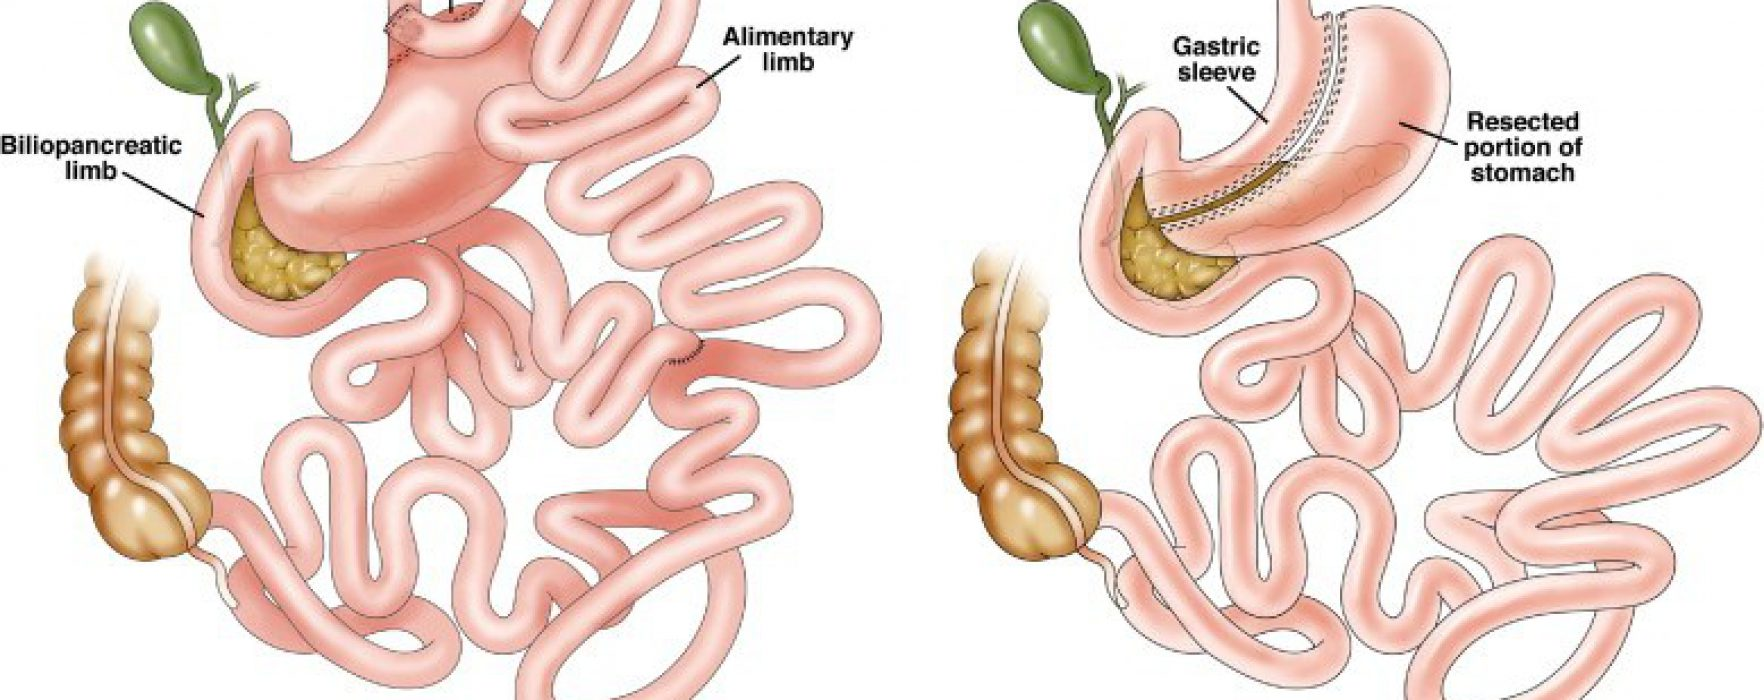 Is Bariatric Surgery the Best Treatment for NAFLD?